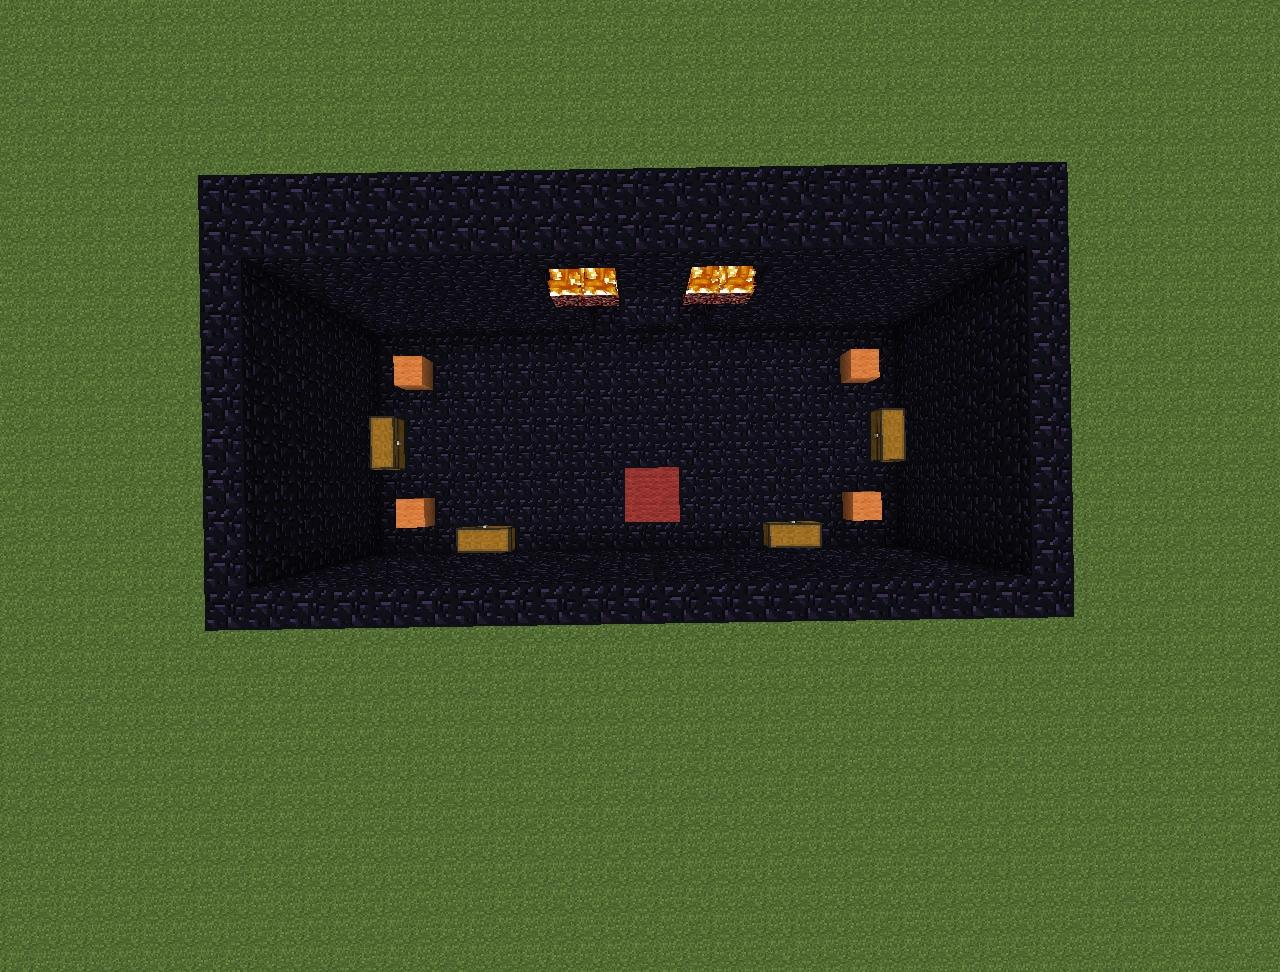 For minecraft orange creeper displaying 15 images for minecraft